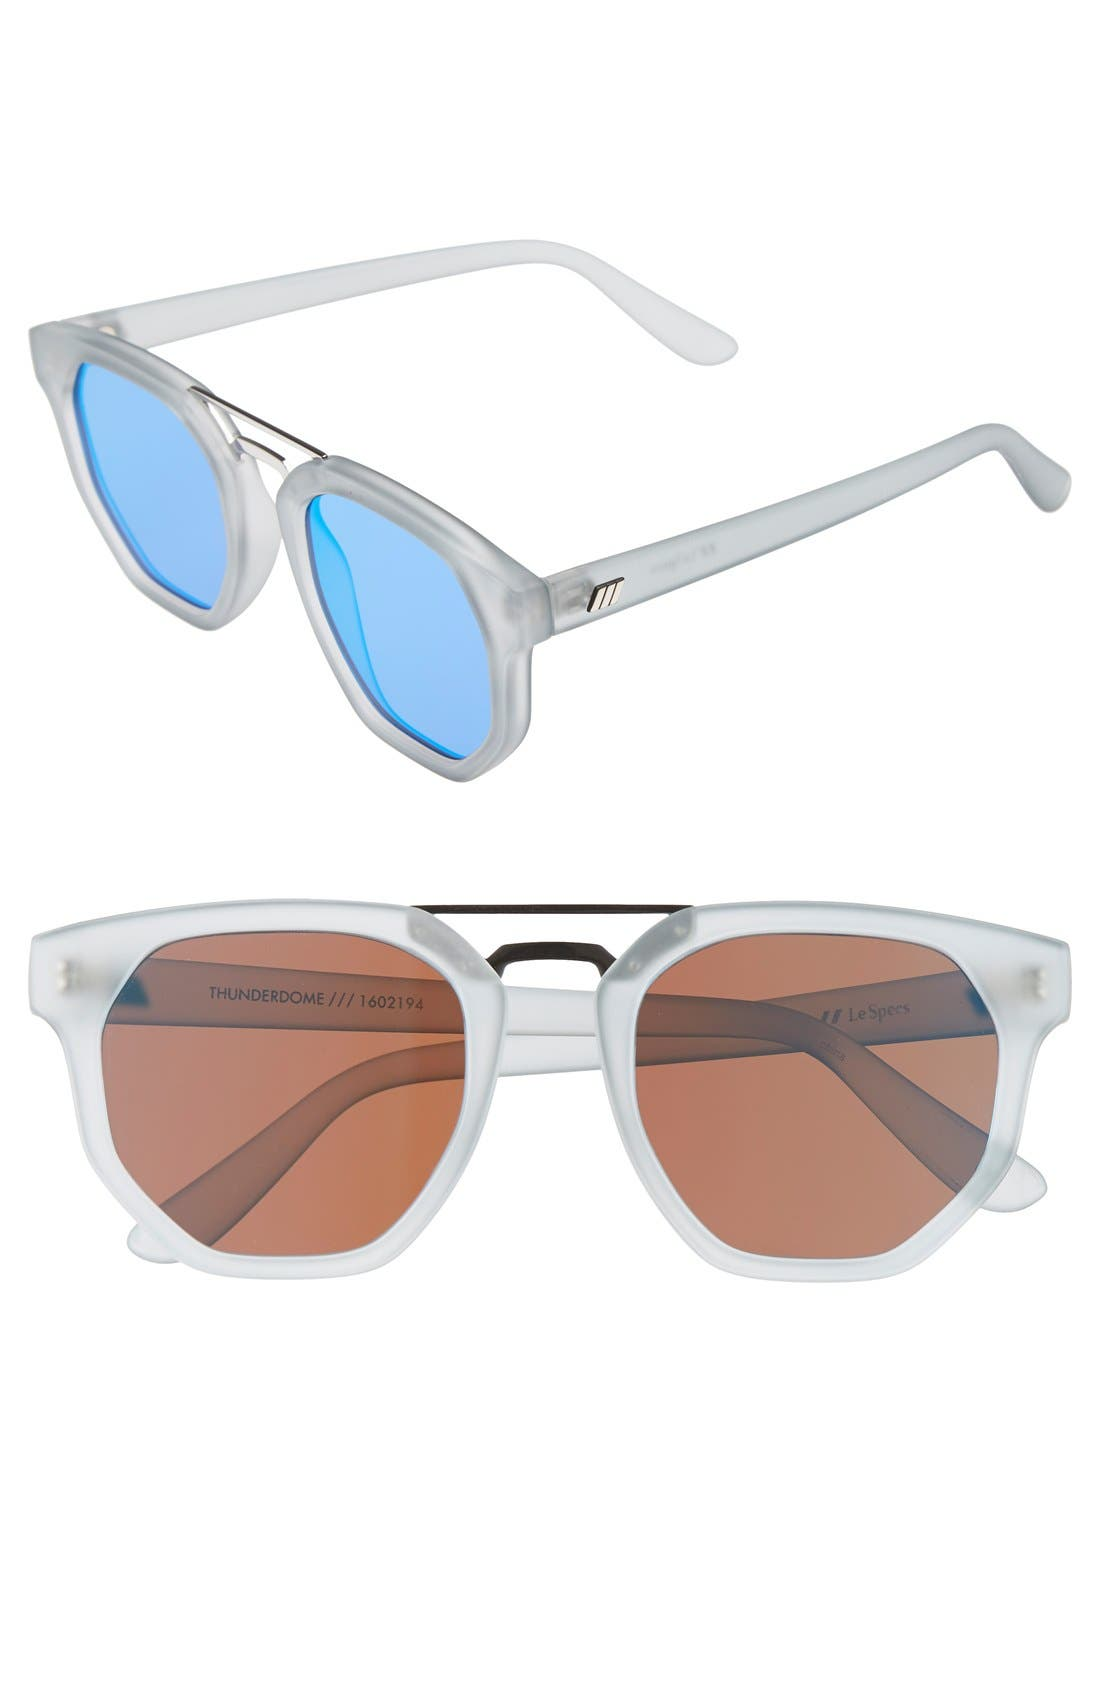 Le Specs 'Thunderdome' 52mm Sunglasses